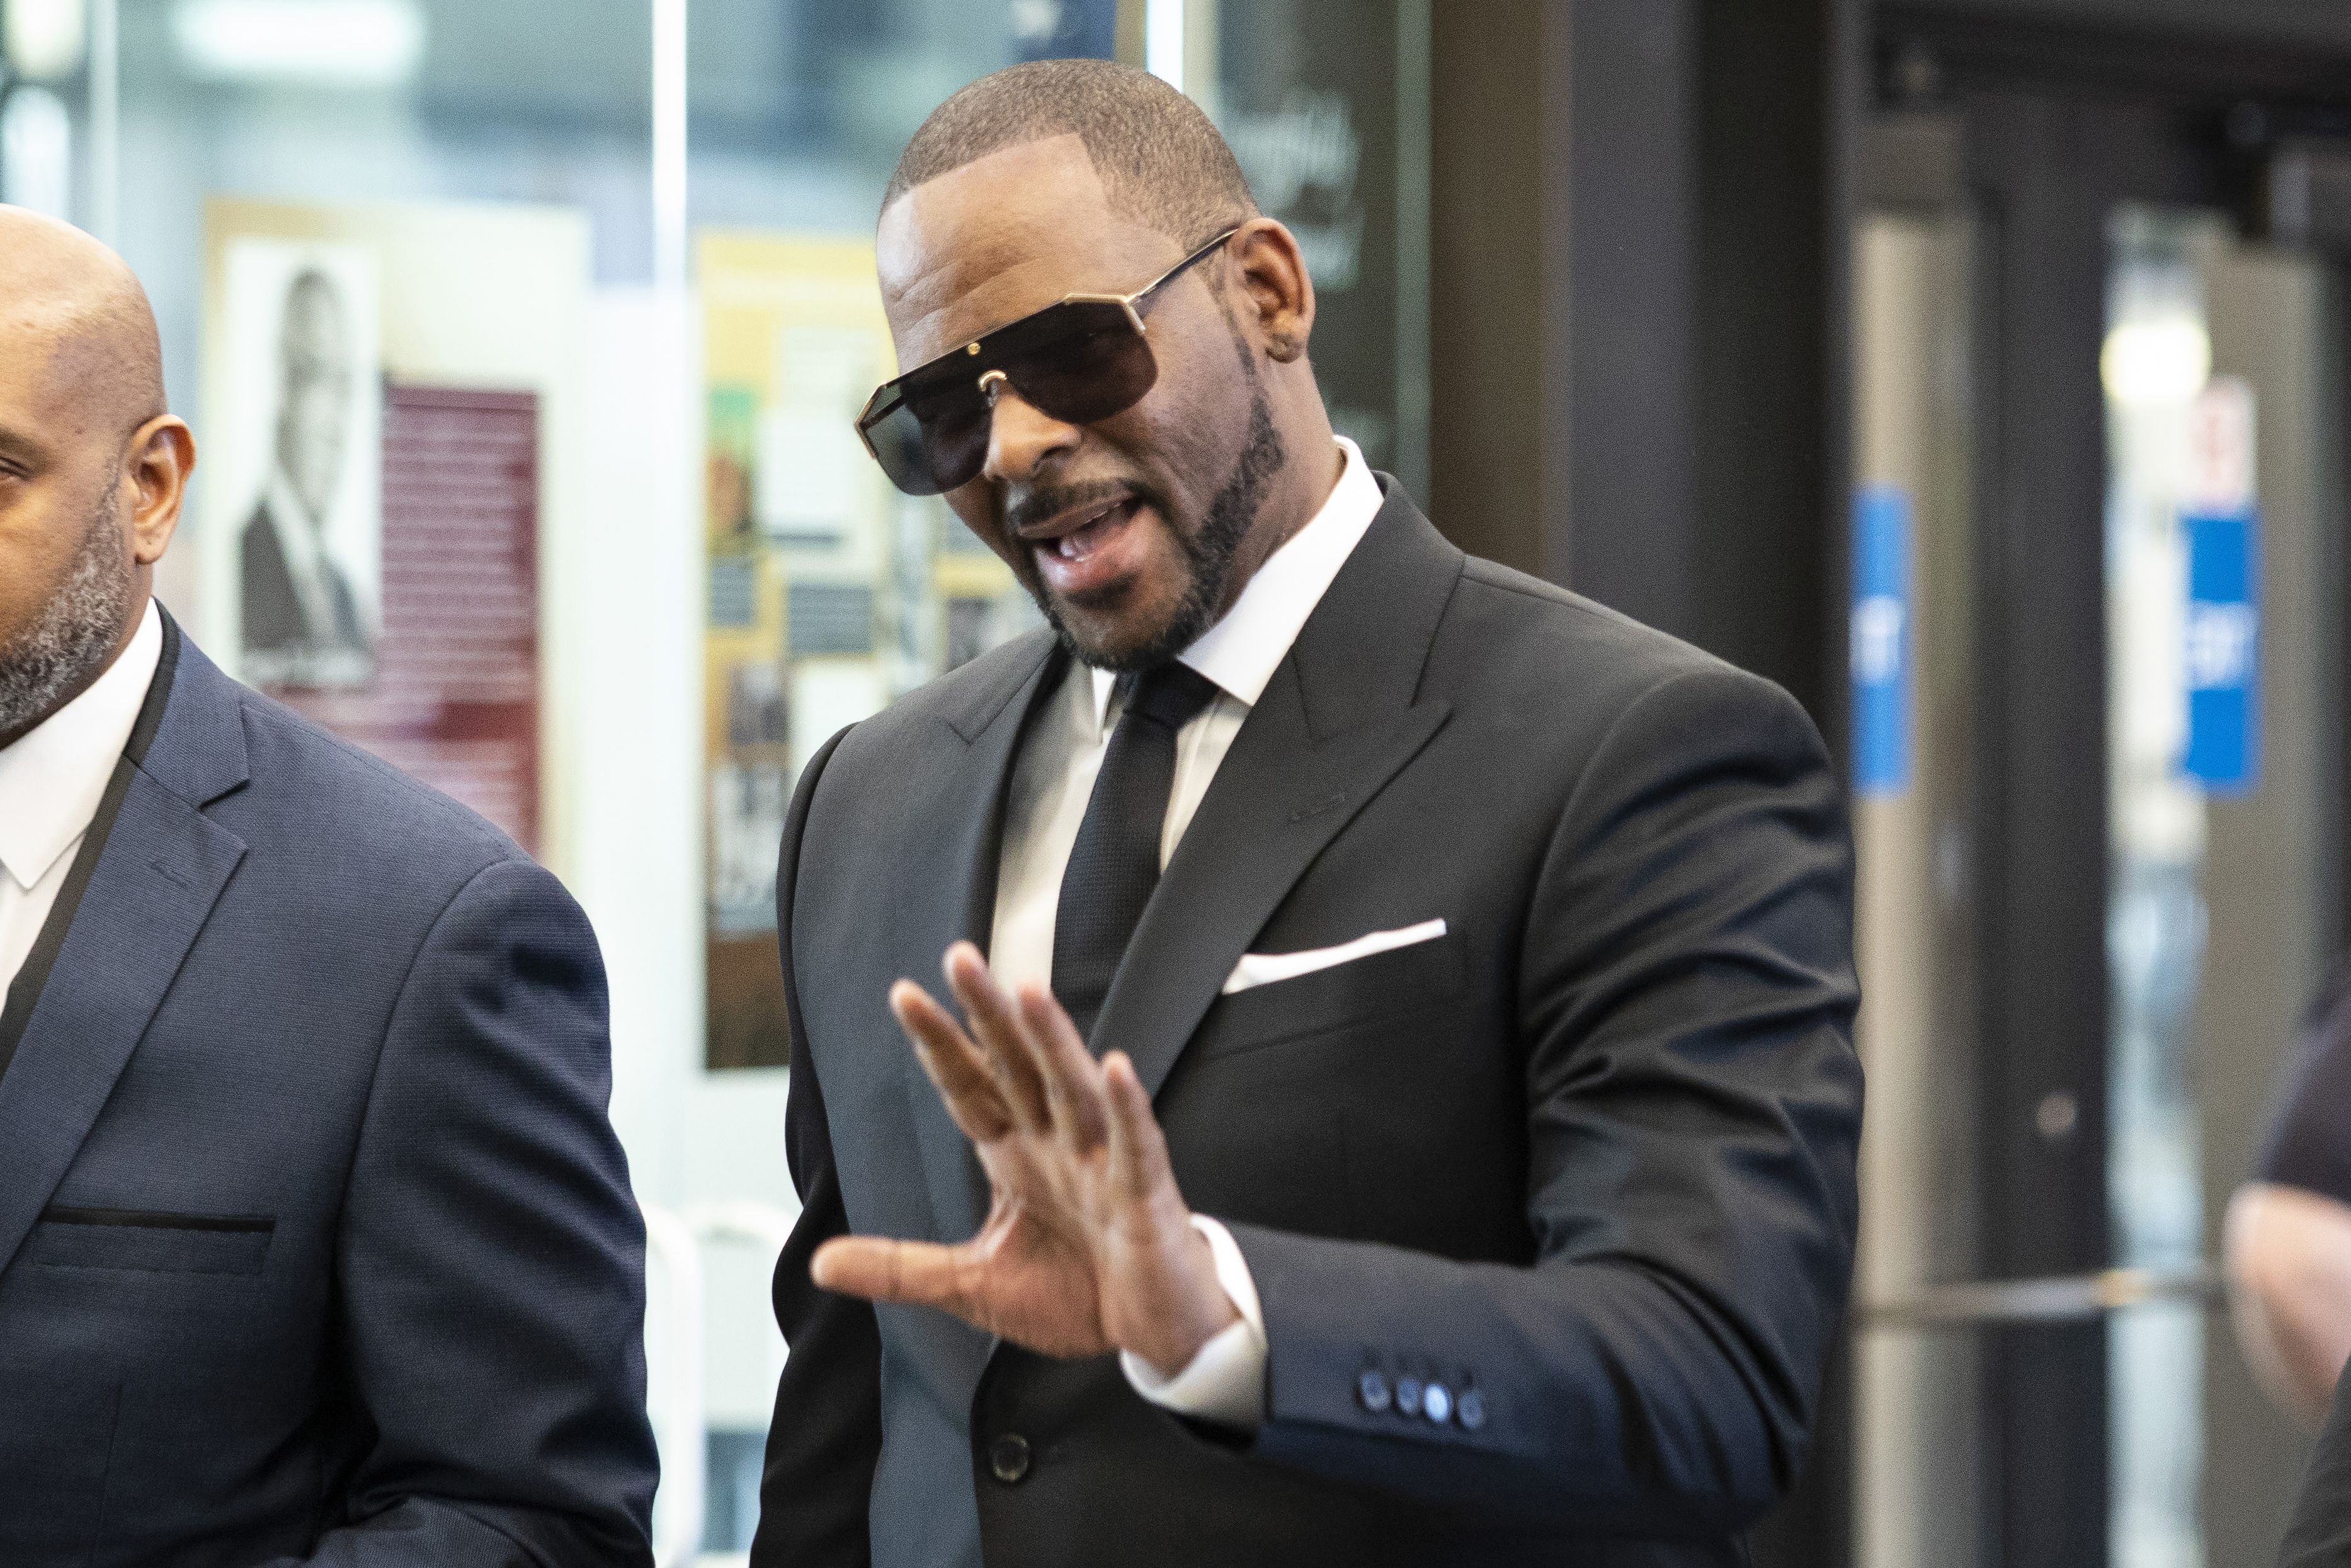 In this March 22, 2019, file photo, musician R. Kelly walks into the Leighton Criminal Courthouse for a hearing in his criminal sexual abuse trial in Chicago.